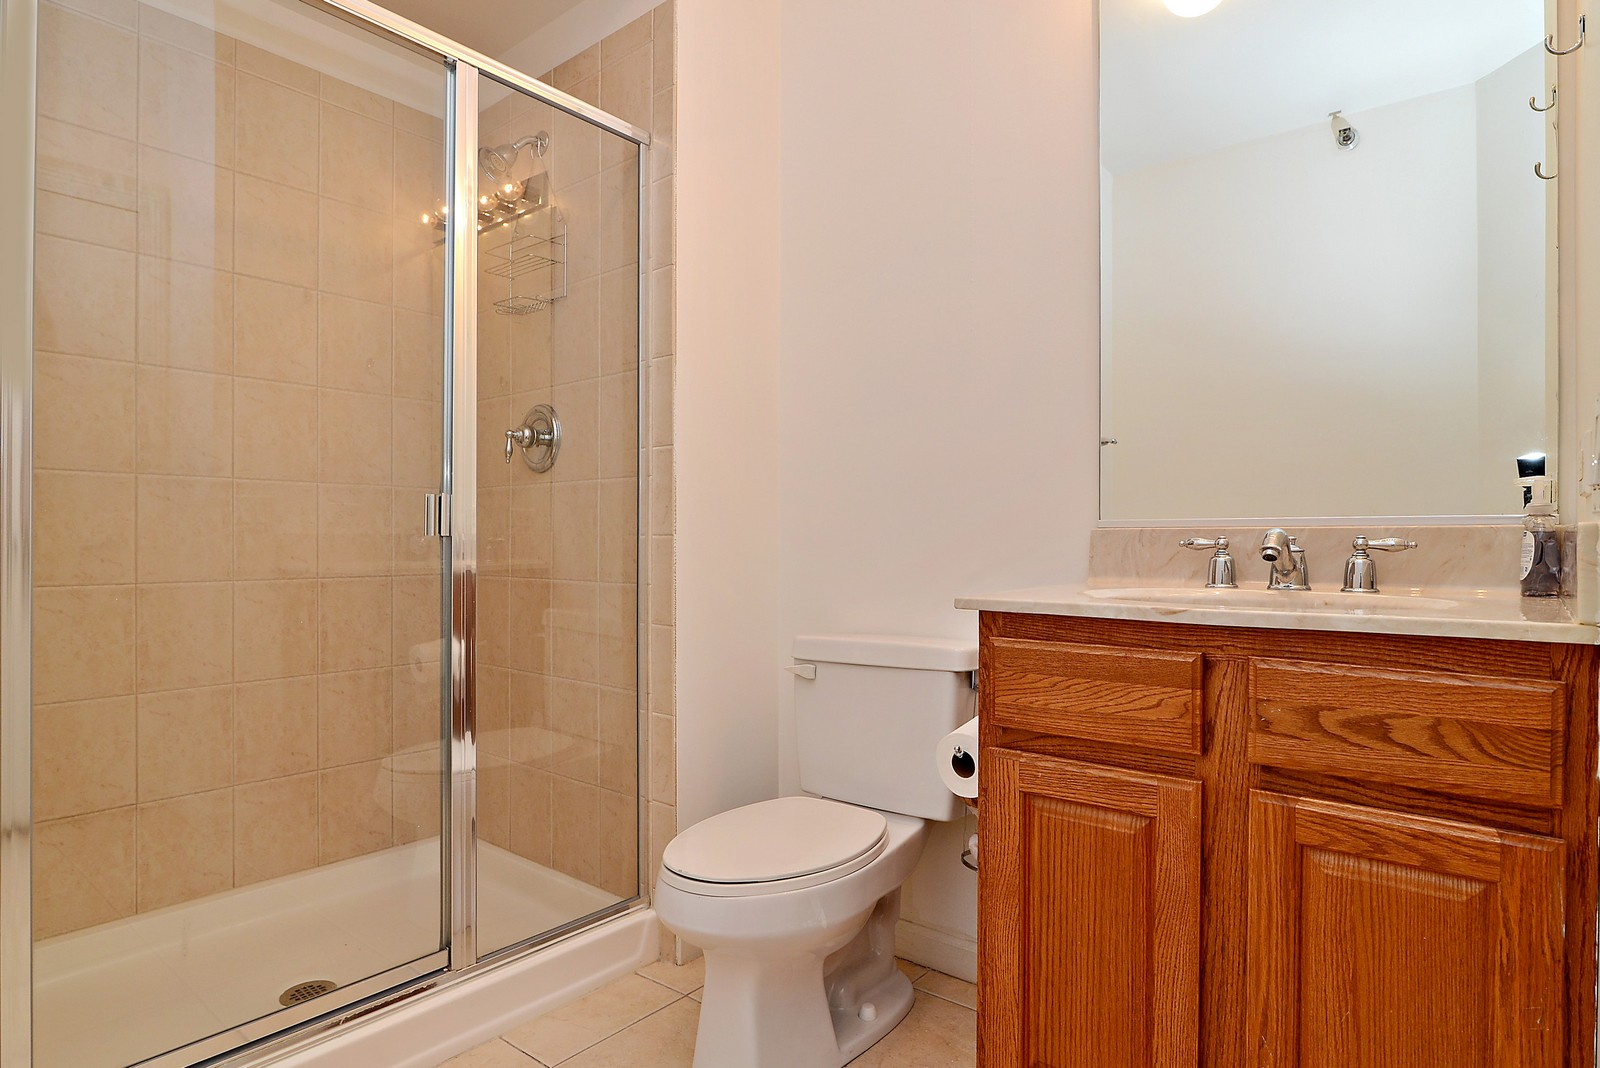 Real Estate Photography - 1111 S Wabash, Apt 703, Chicago, IL, 60605 - Bathroom